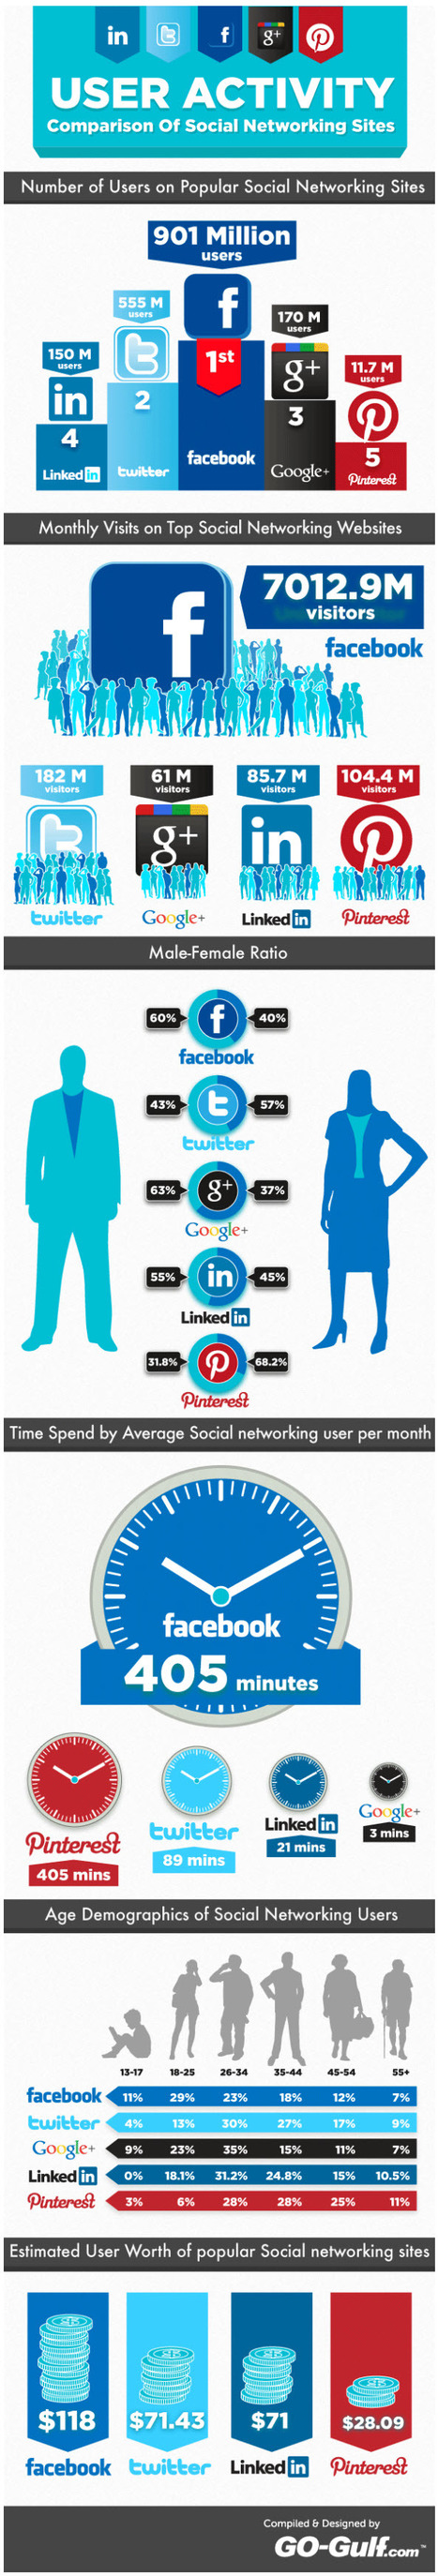 Social Network Tribes Gaining Momentum - The Latest Findings [Infographic] | Curation, Social Business and Beyond | Scoop.it